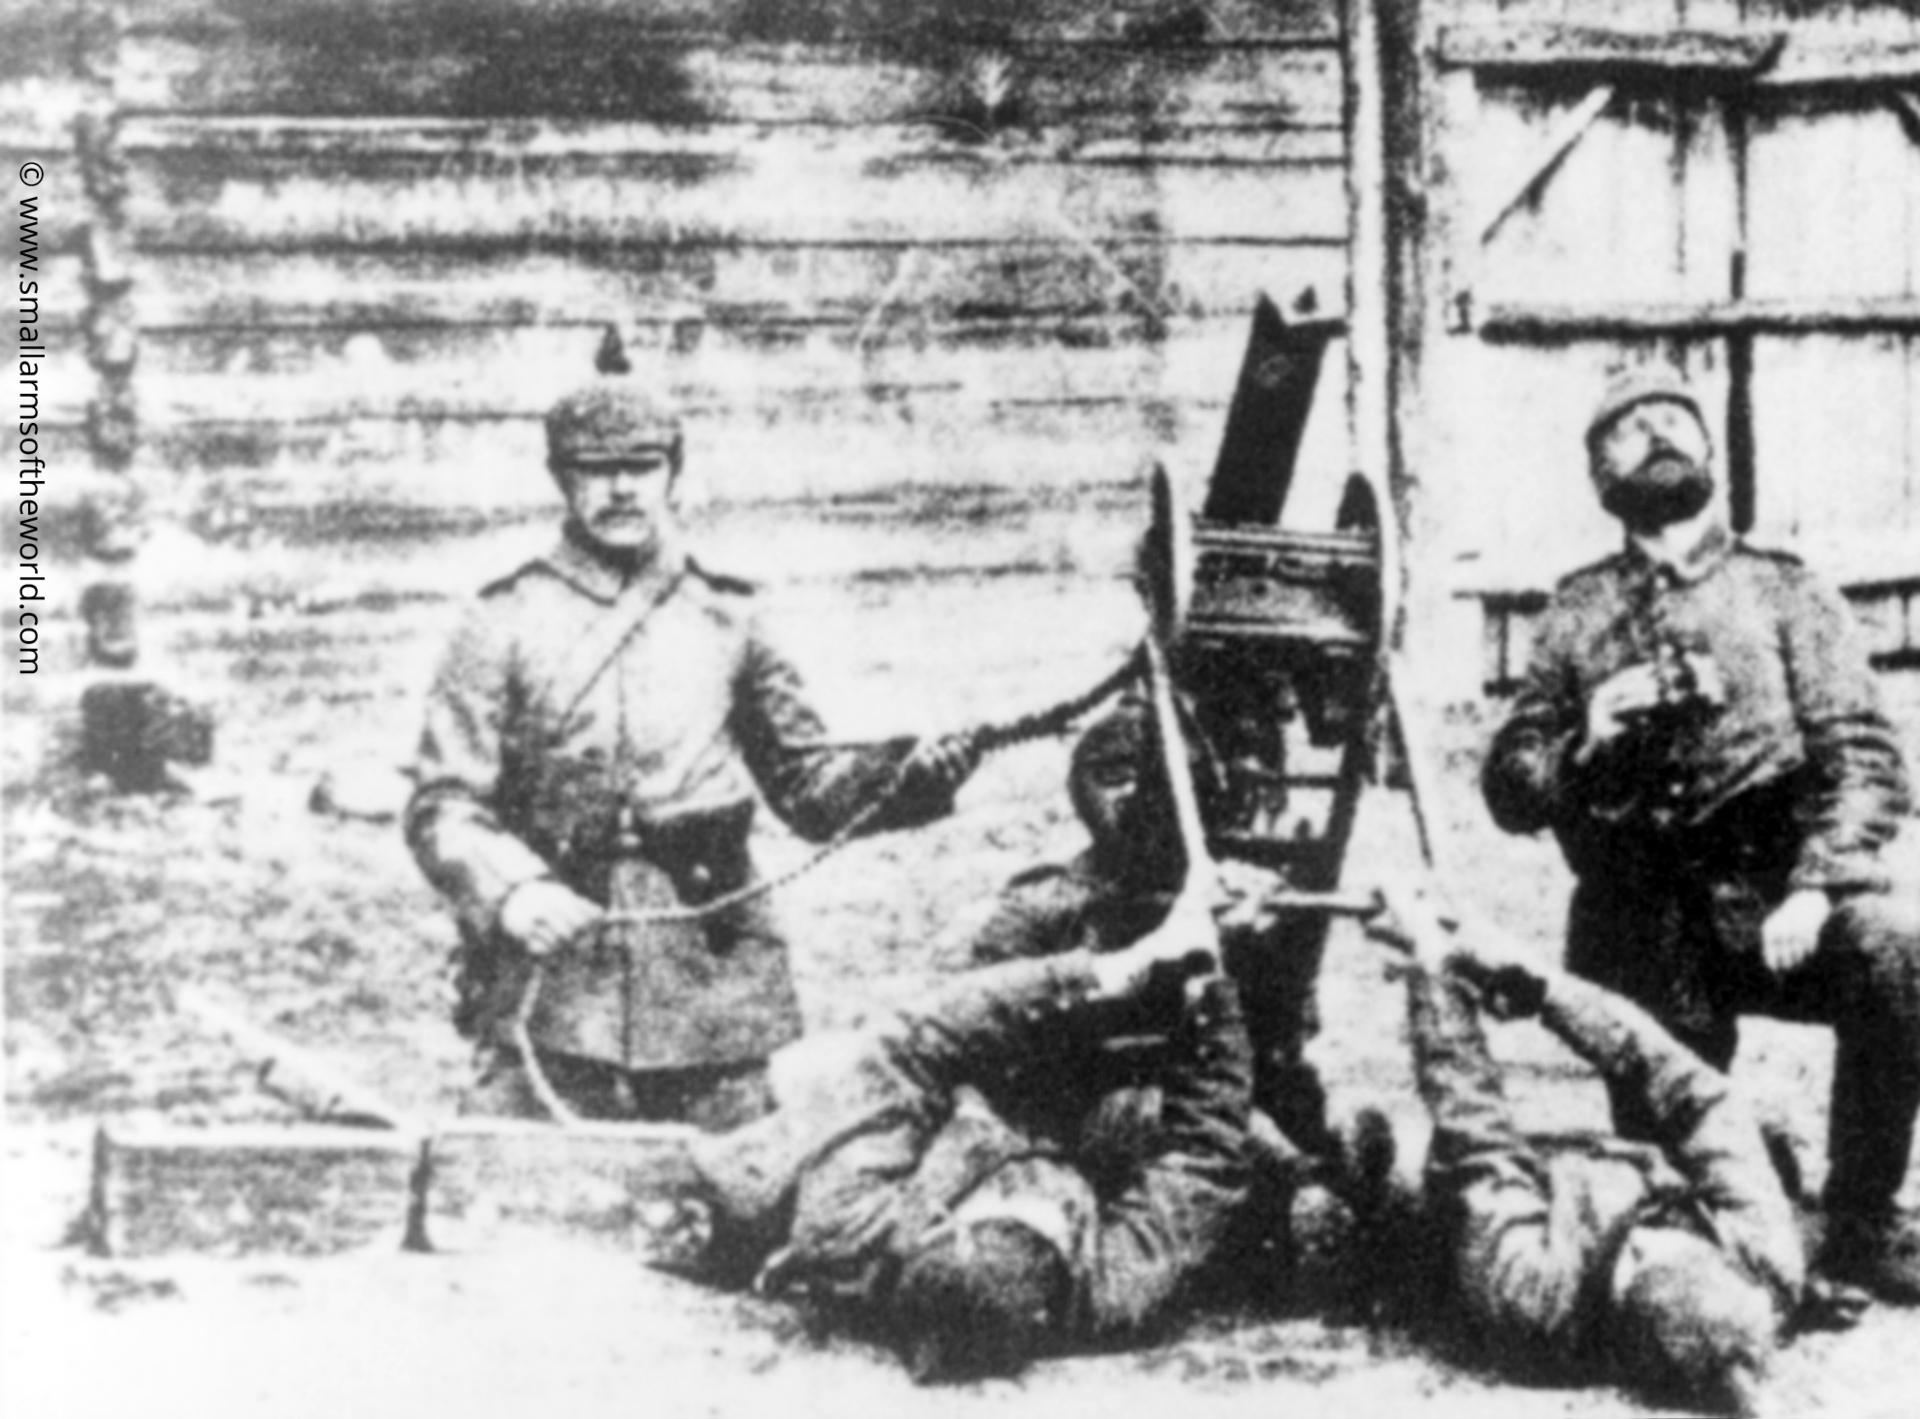 Maxim MG08. These are German Lundwehr troops using a very primitive field expedient method to achieve anti-aircraft fire. As the gun ejects its empty cases from underneath the receiver, and to the front. The men supporting the legs of the sled are keeping well to the side to avoid the fired cases, Russia, 1914.